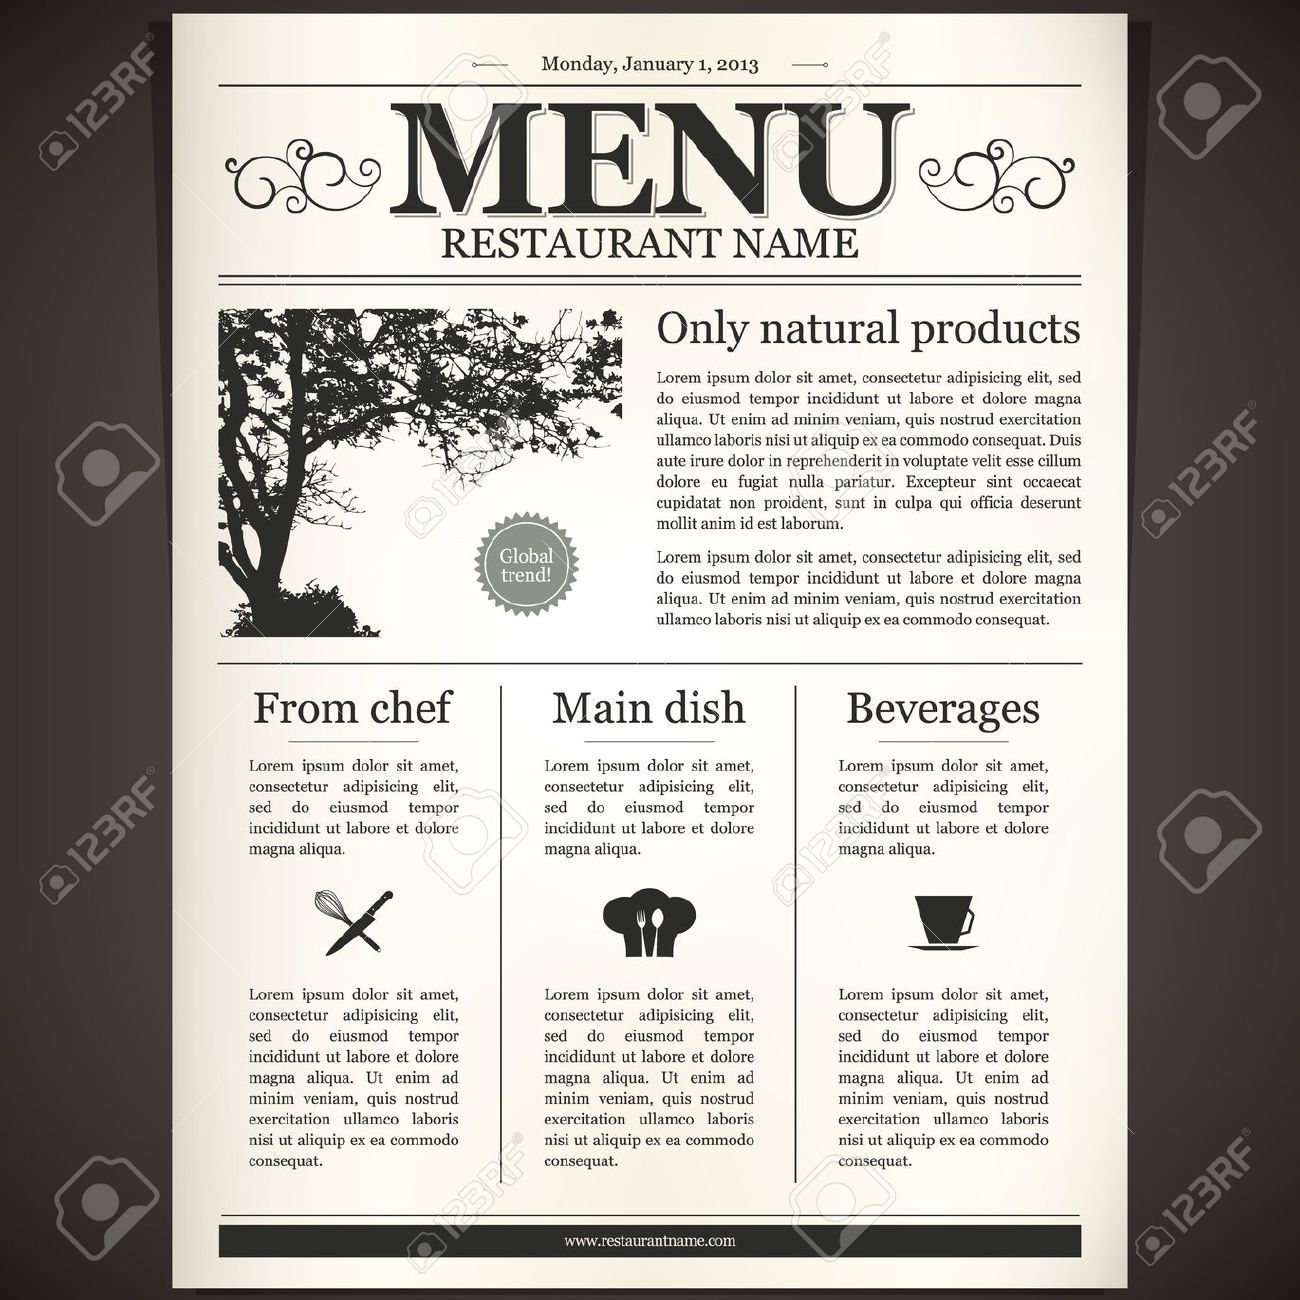 contemporary restaurant menu design - google search | self promotion